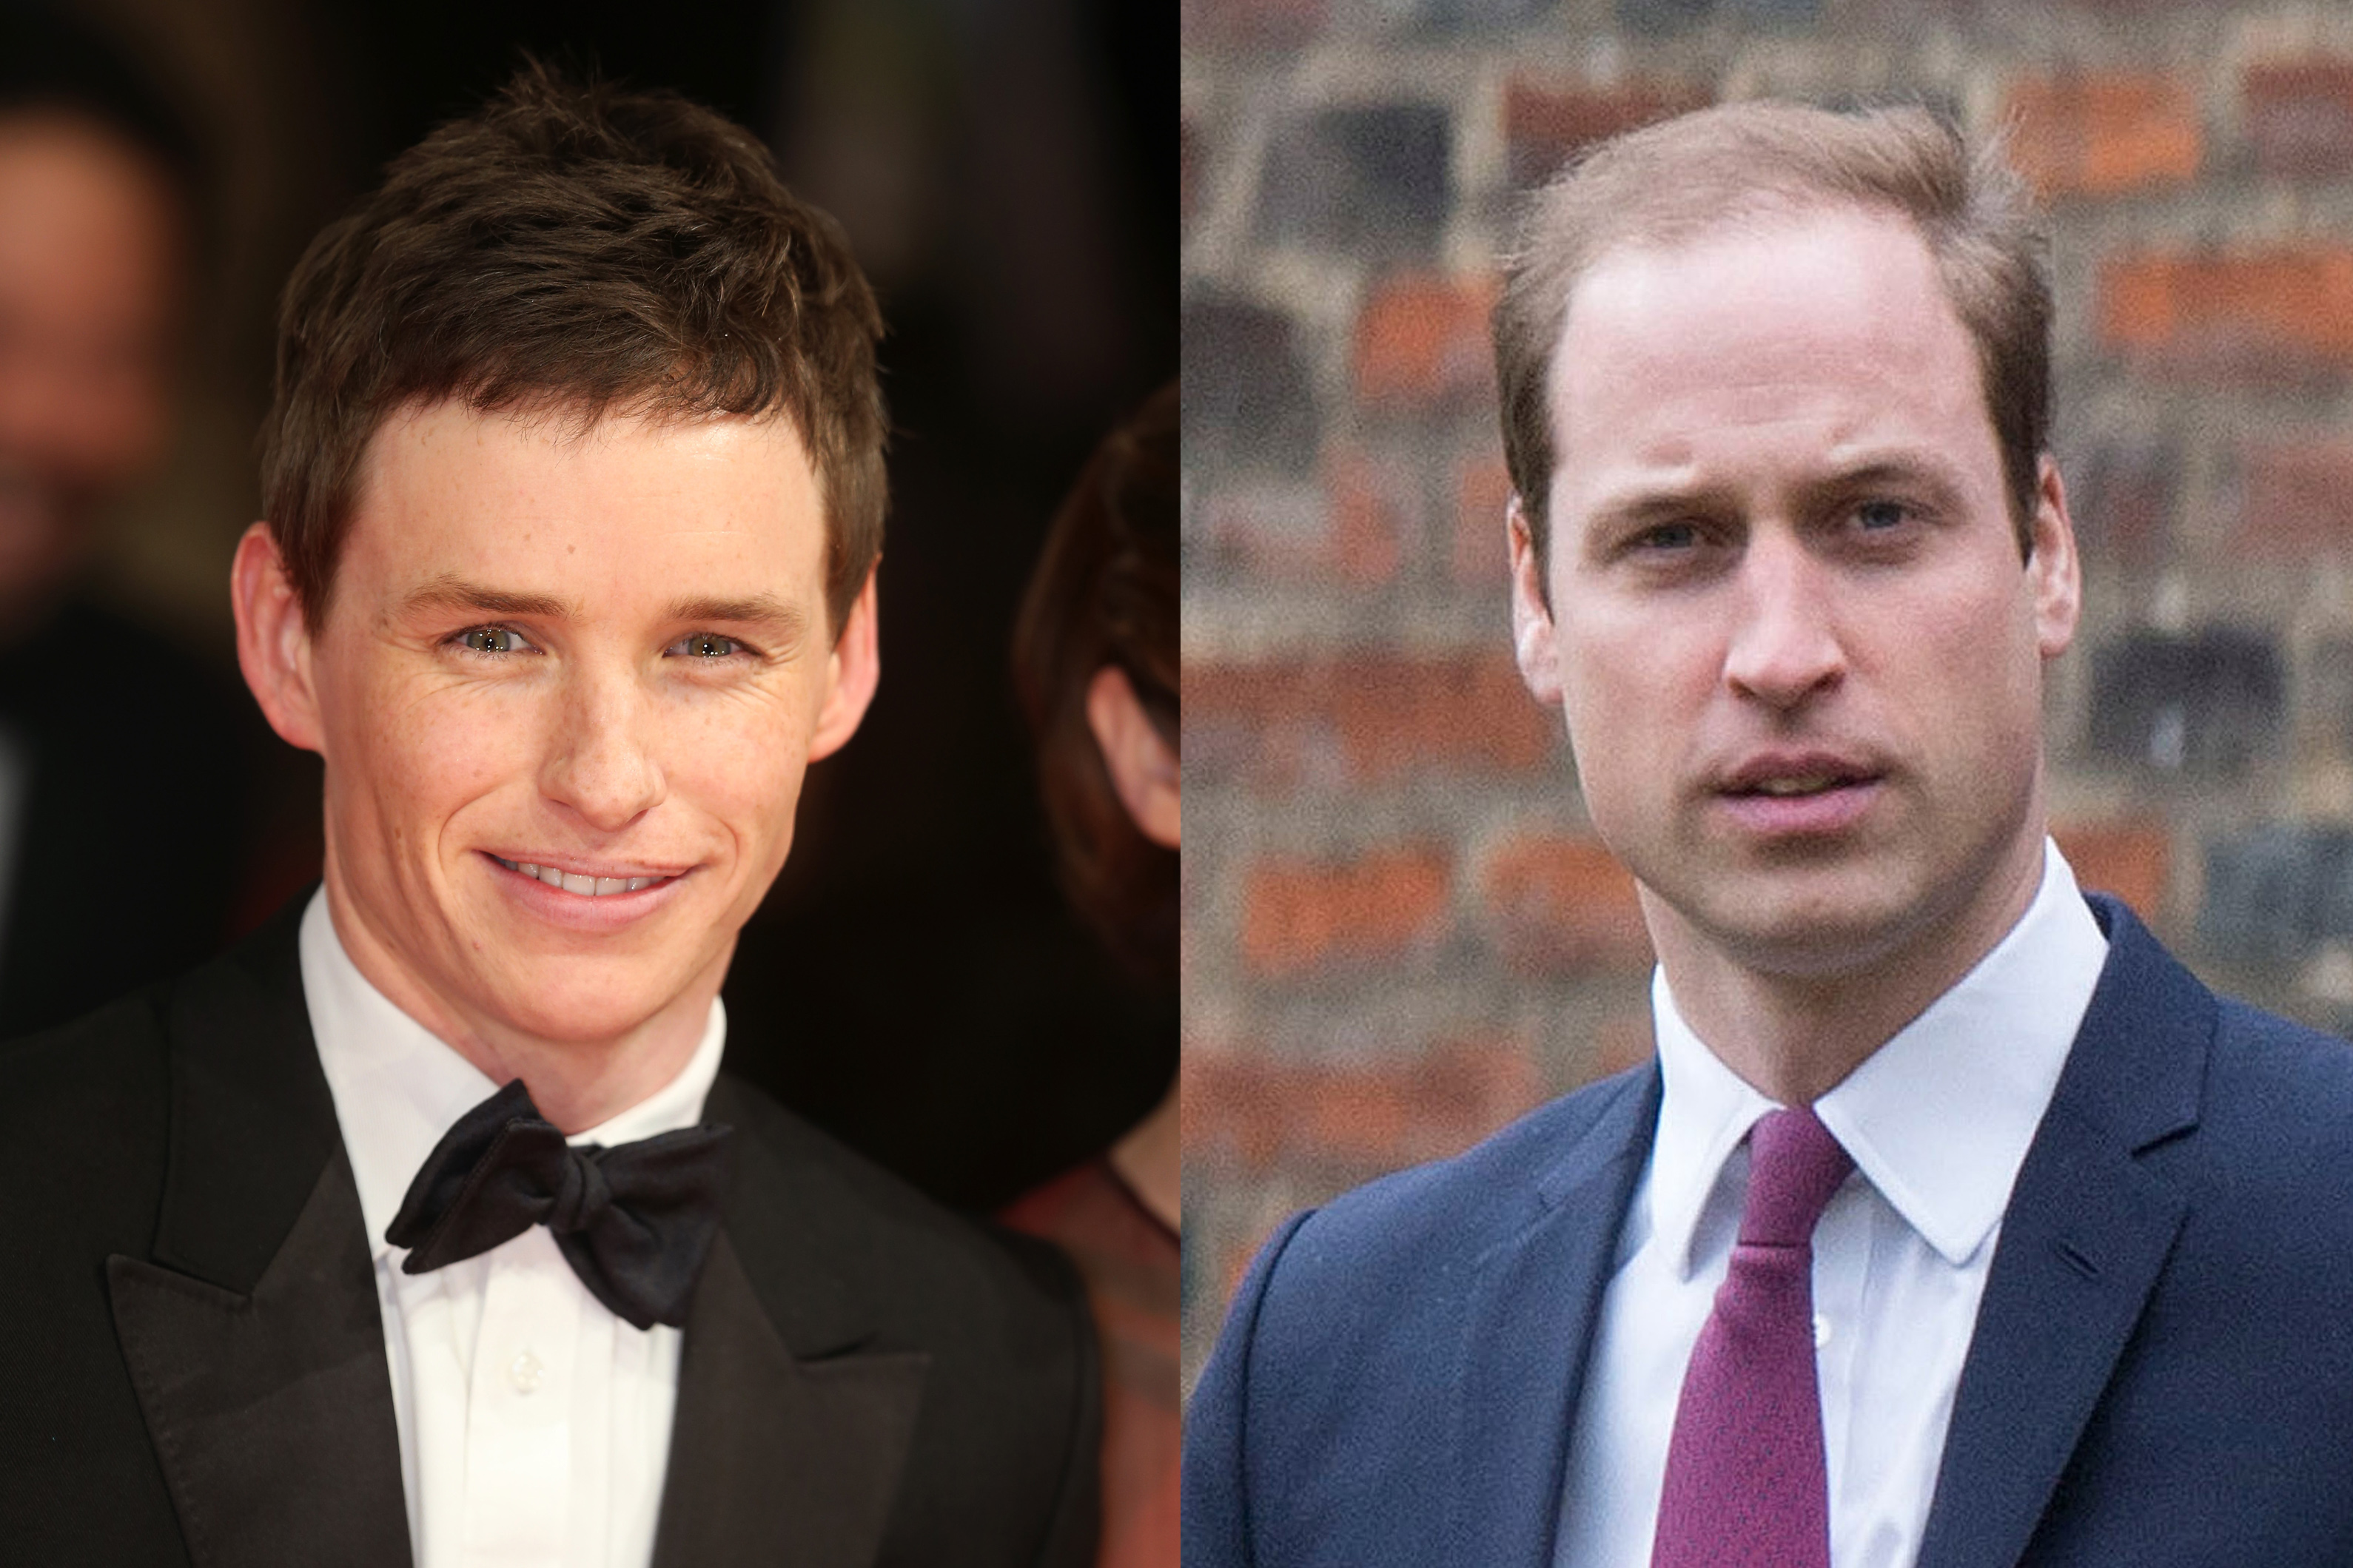 Prince William and the actor Eddie Redmayne went to posh British school Eton together — and were even in the same campus club together.